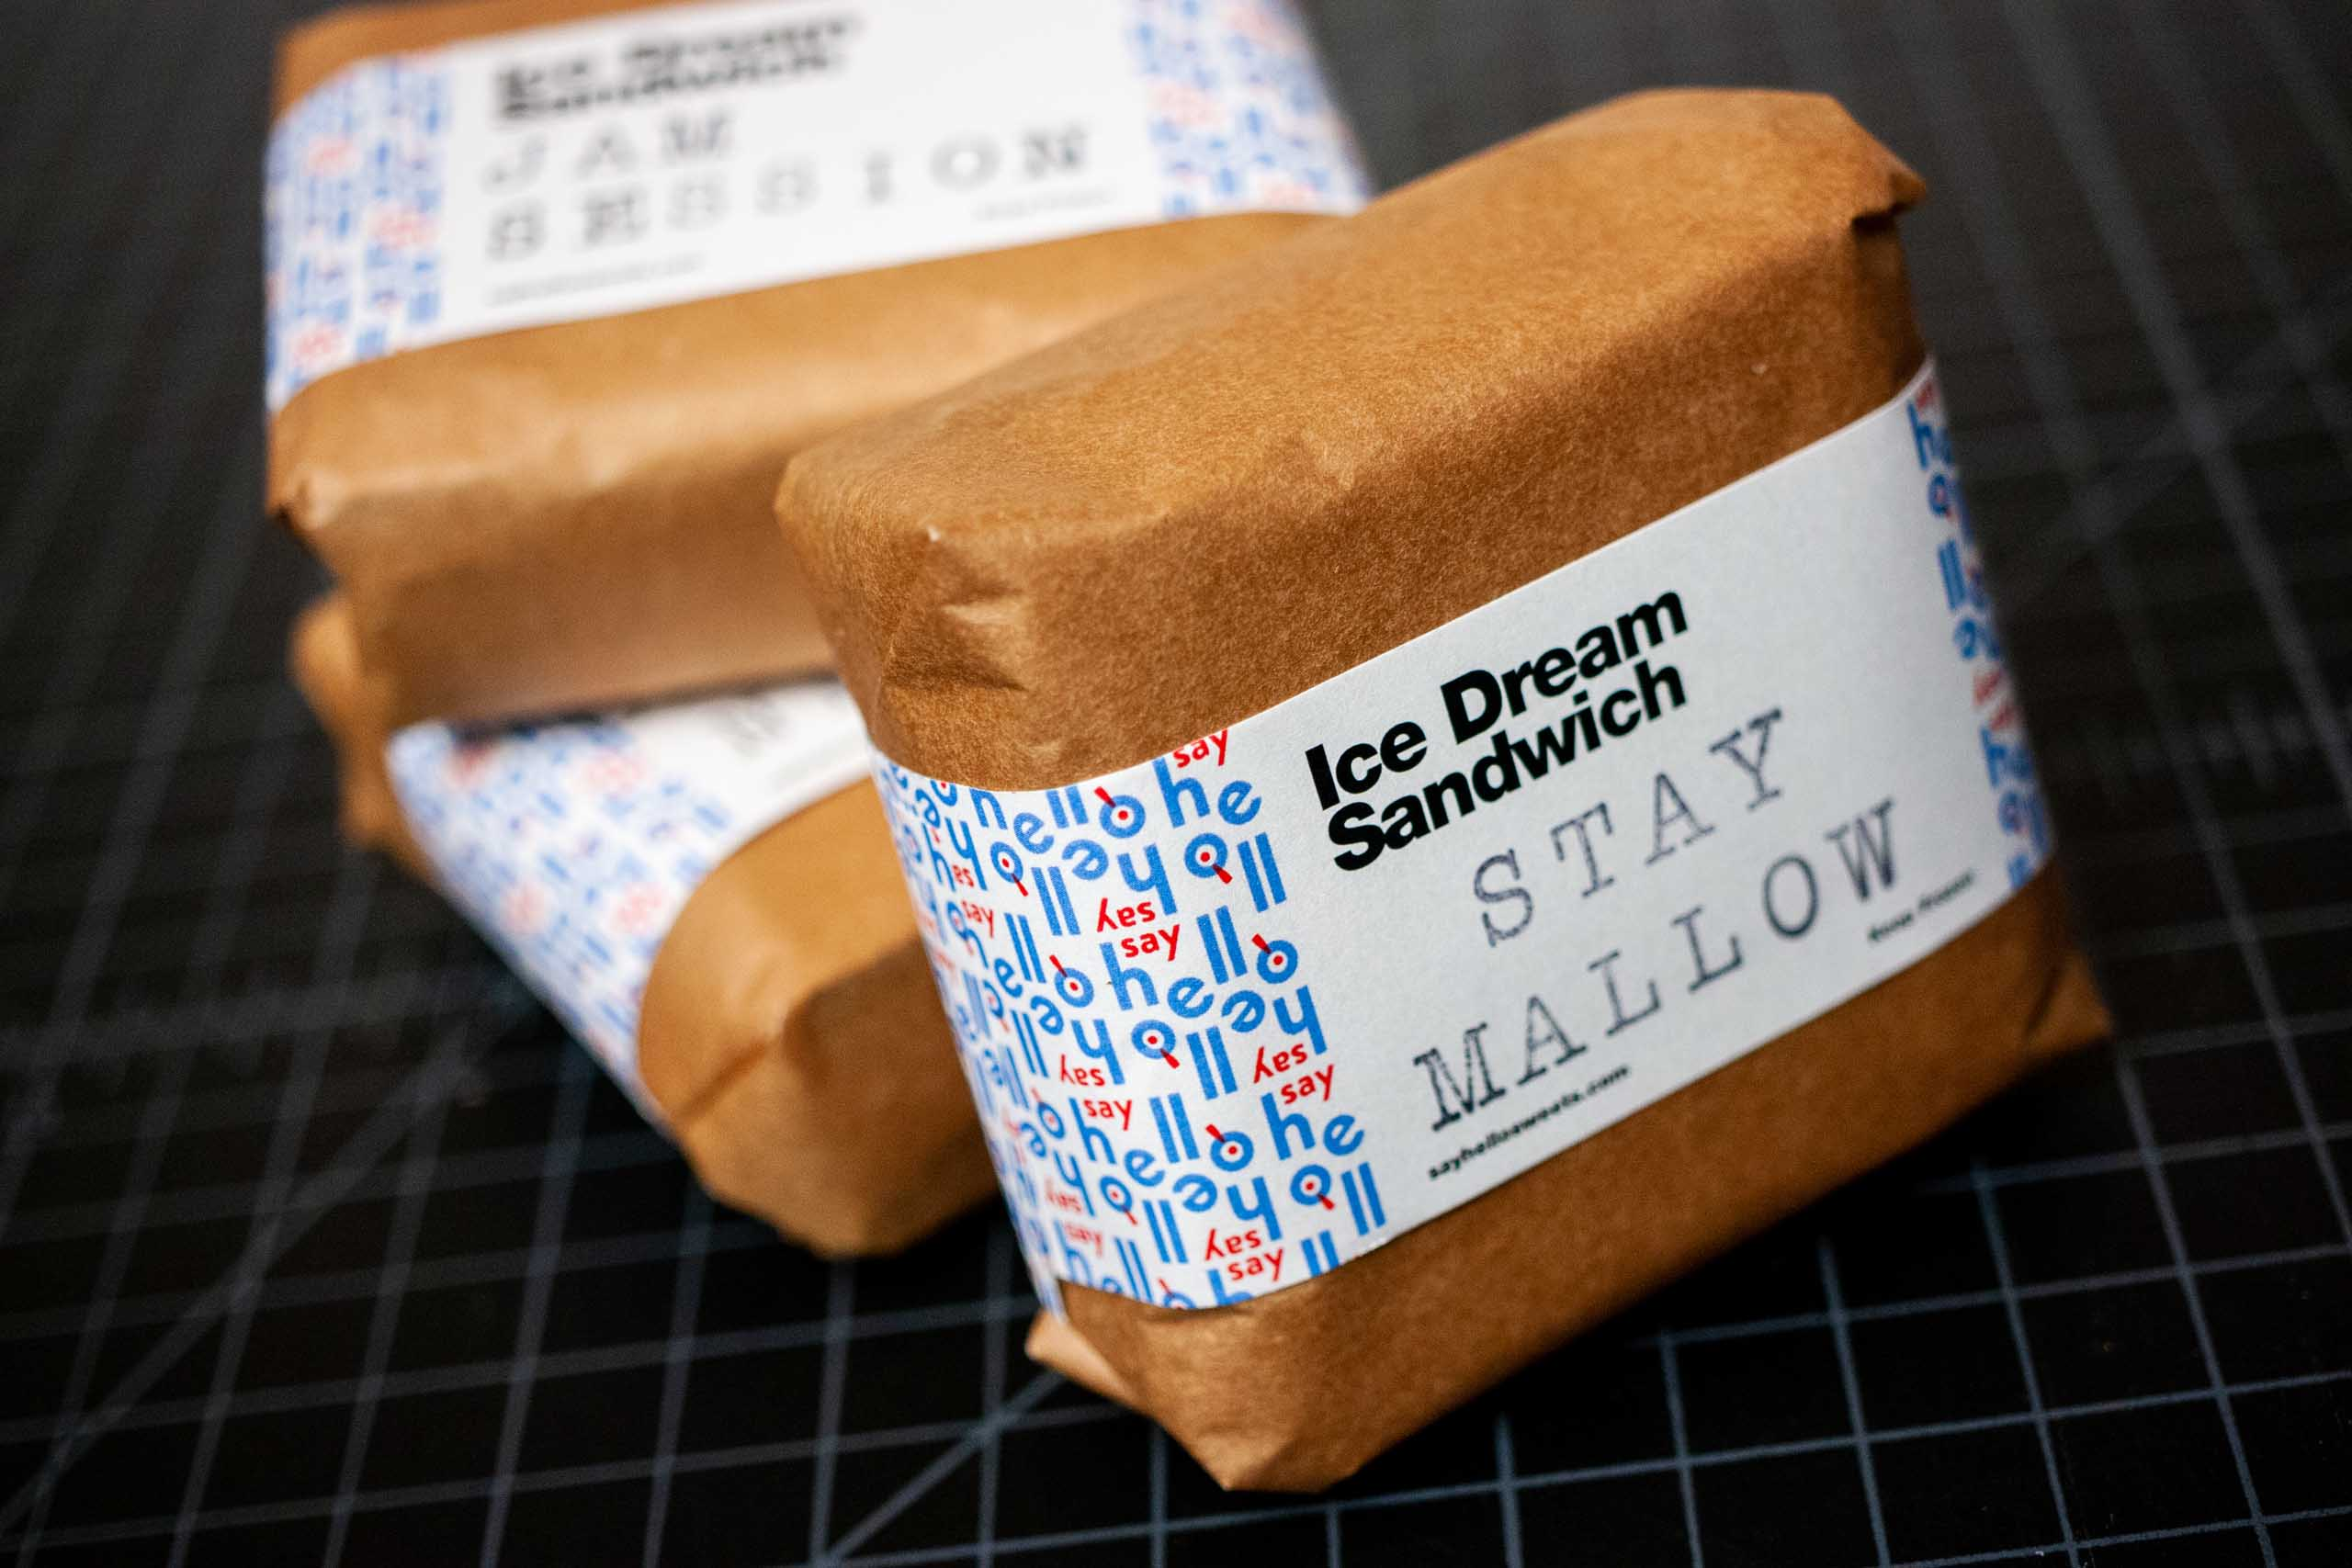 Tree ice cream sandwiches with label on, showcasing the warm brown craft paper wrapper — by Dima Yagnyuk.